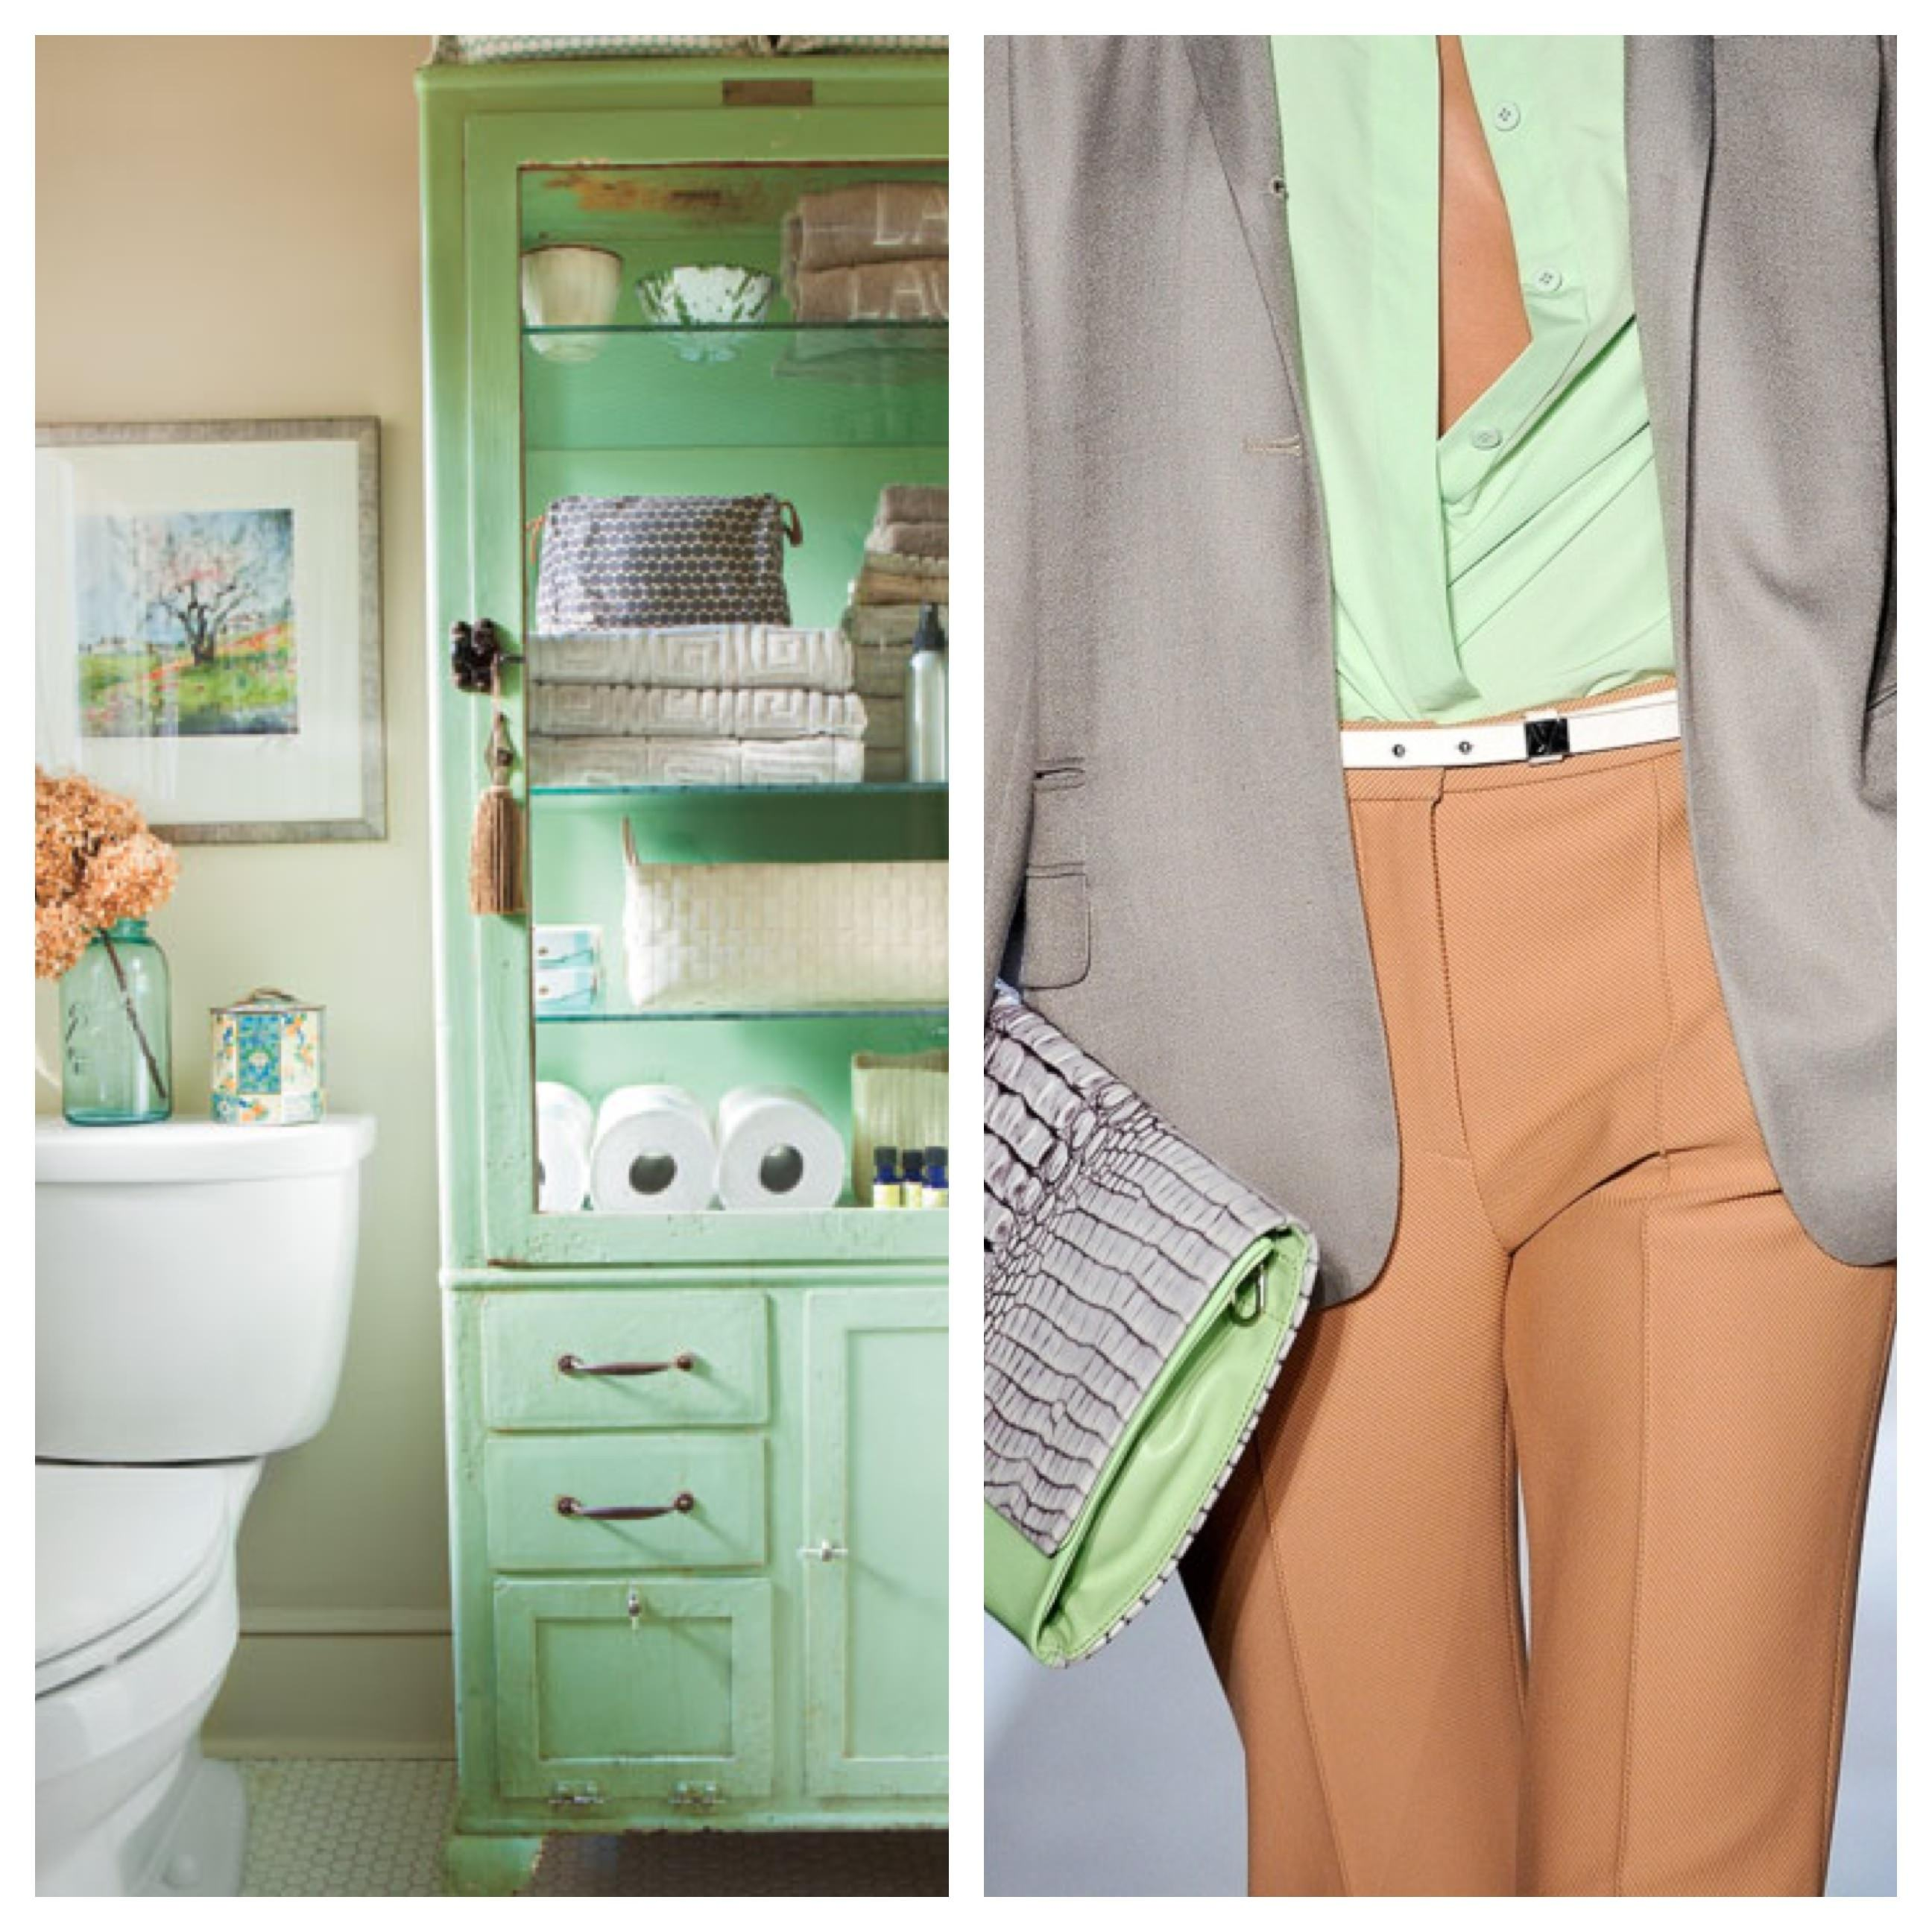 Fashion Week, New York Fashion Week, Model, Runway, Catwalk, skinny girl, pretty girl, white toilet, mint green cabinet, orange pants, mint green top, modern clutch, grey clutch